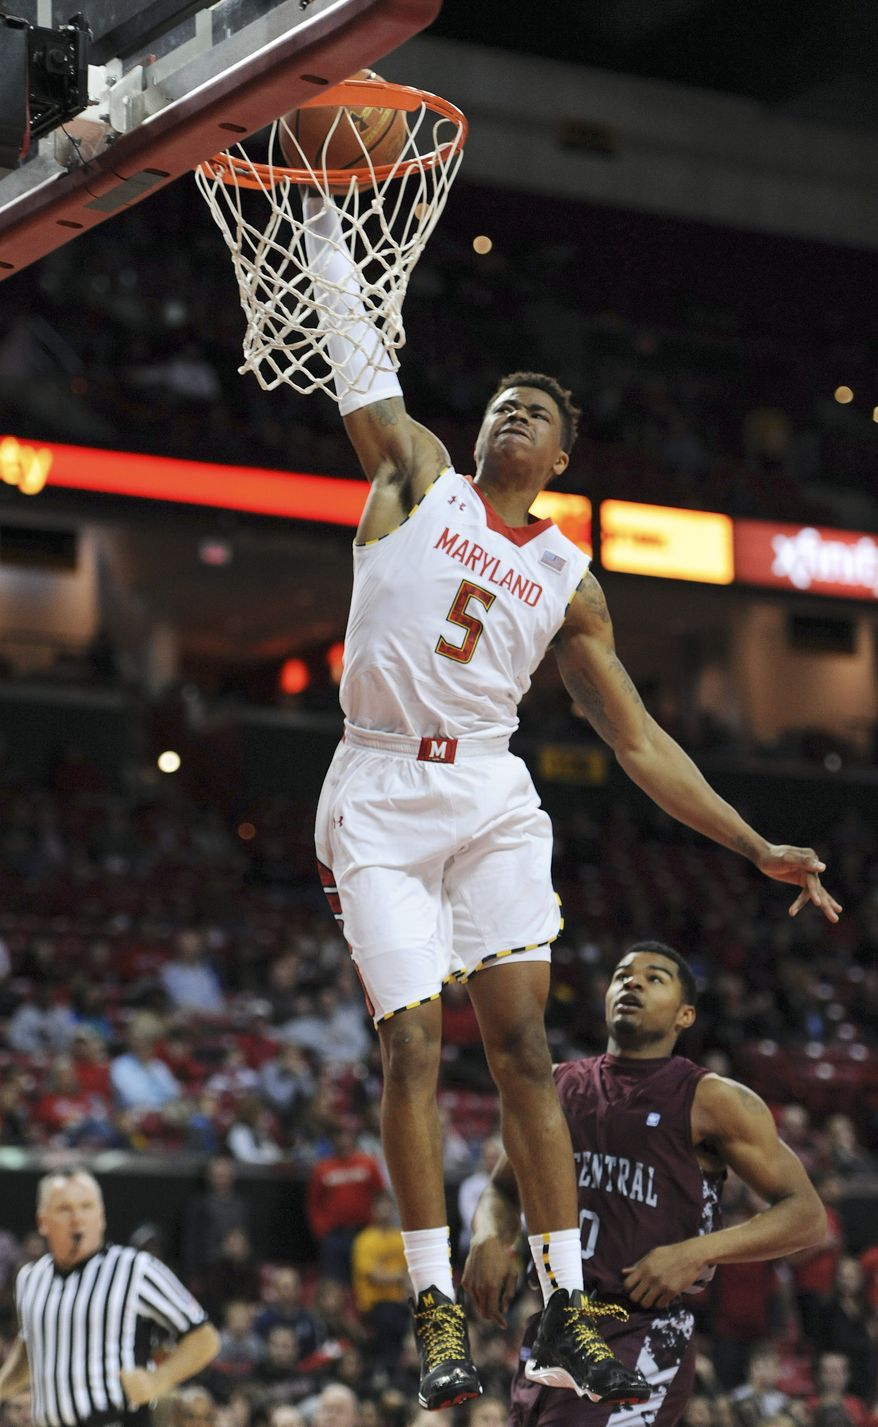 Maryland's Nick Faust dunks the ball to score against North Carolina Central in the second half of an NCAA college basketball game Tuesday, Dec. 31, 2013, in College Park, Md. Maryland won 70-56.(AP Photo/Gail Burton)